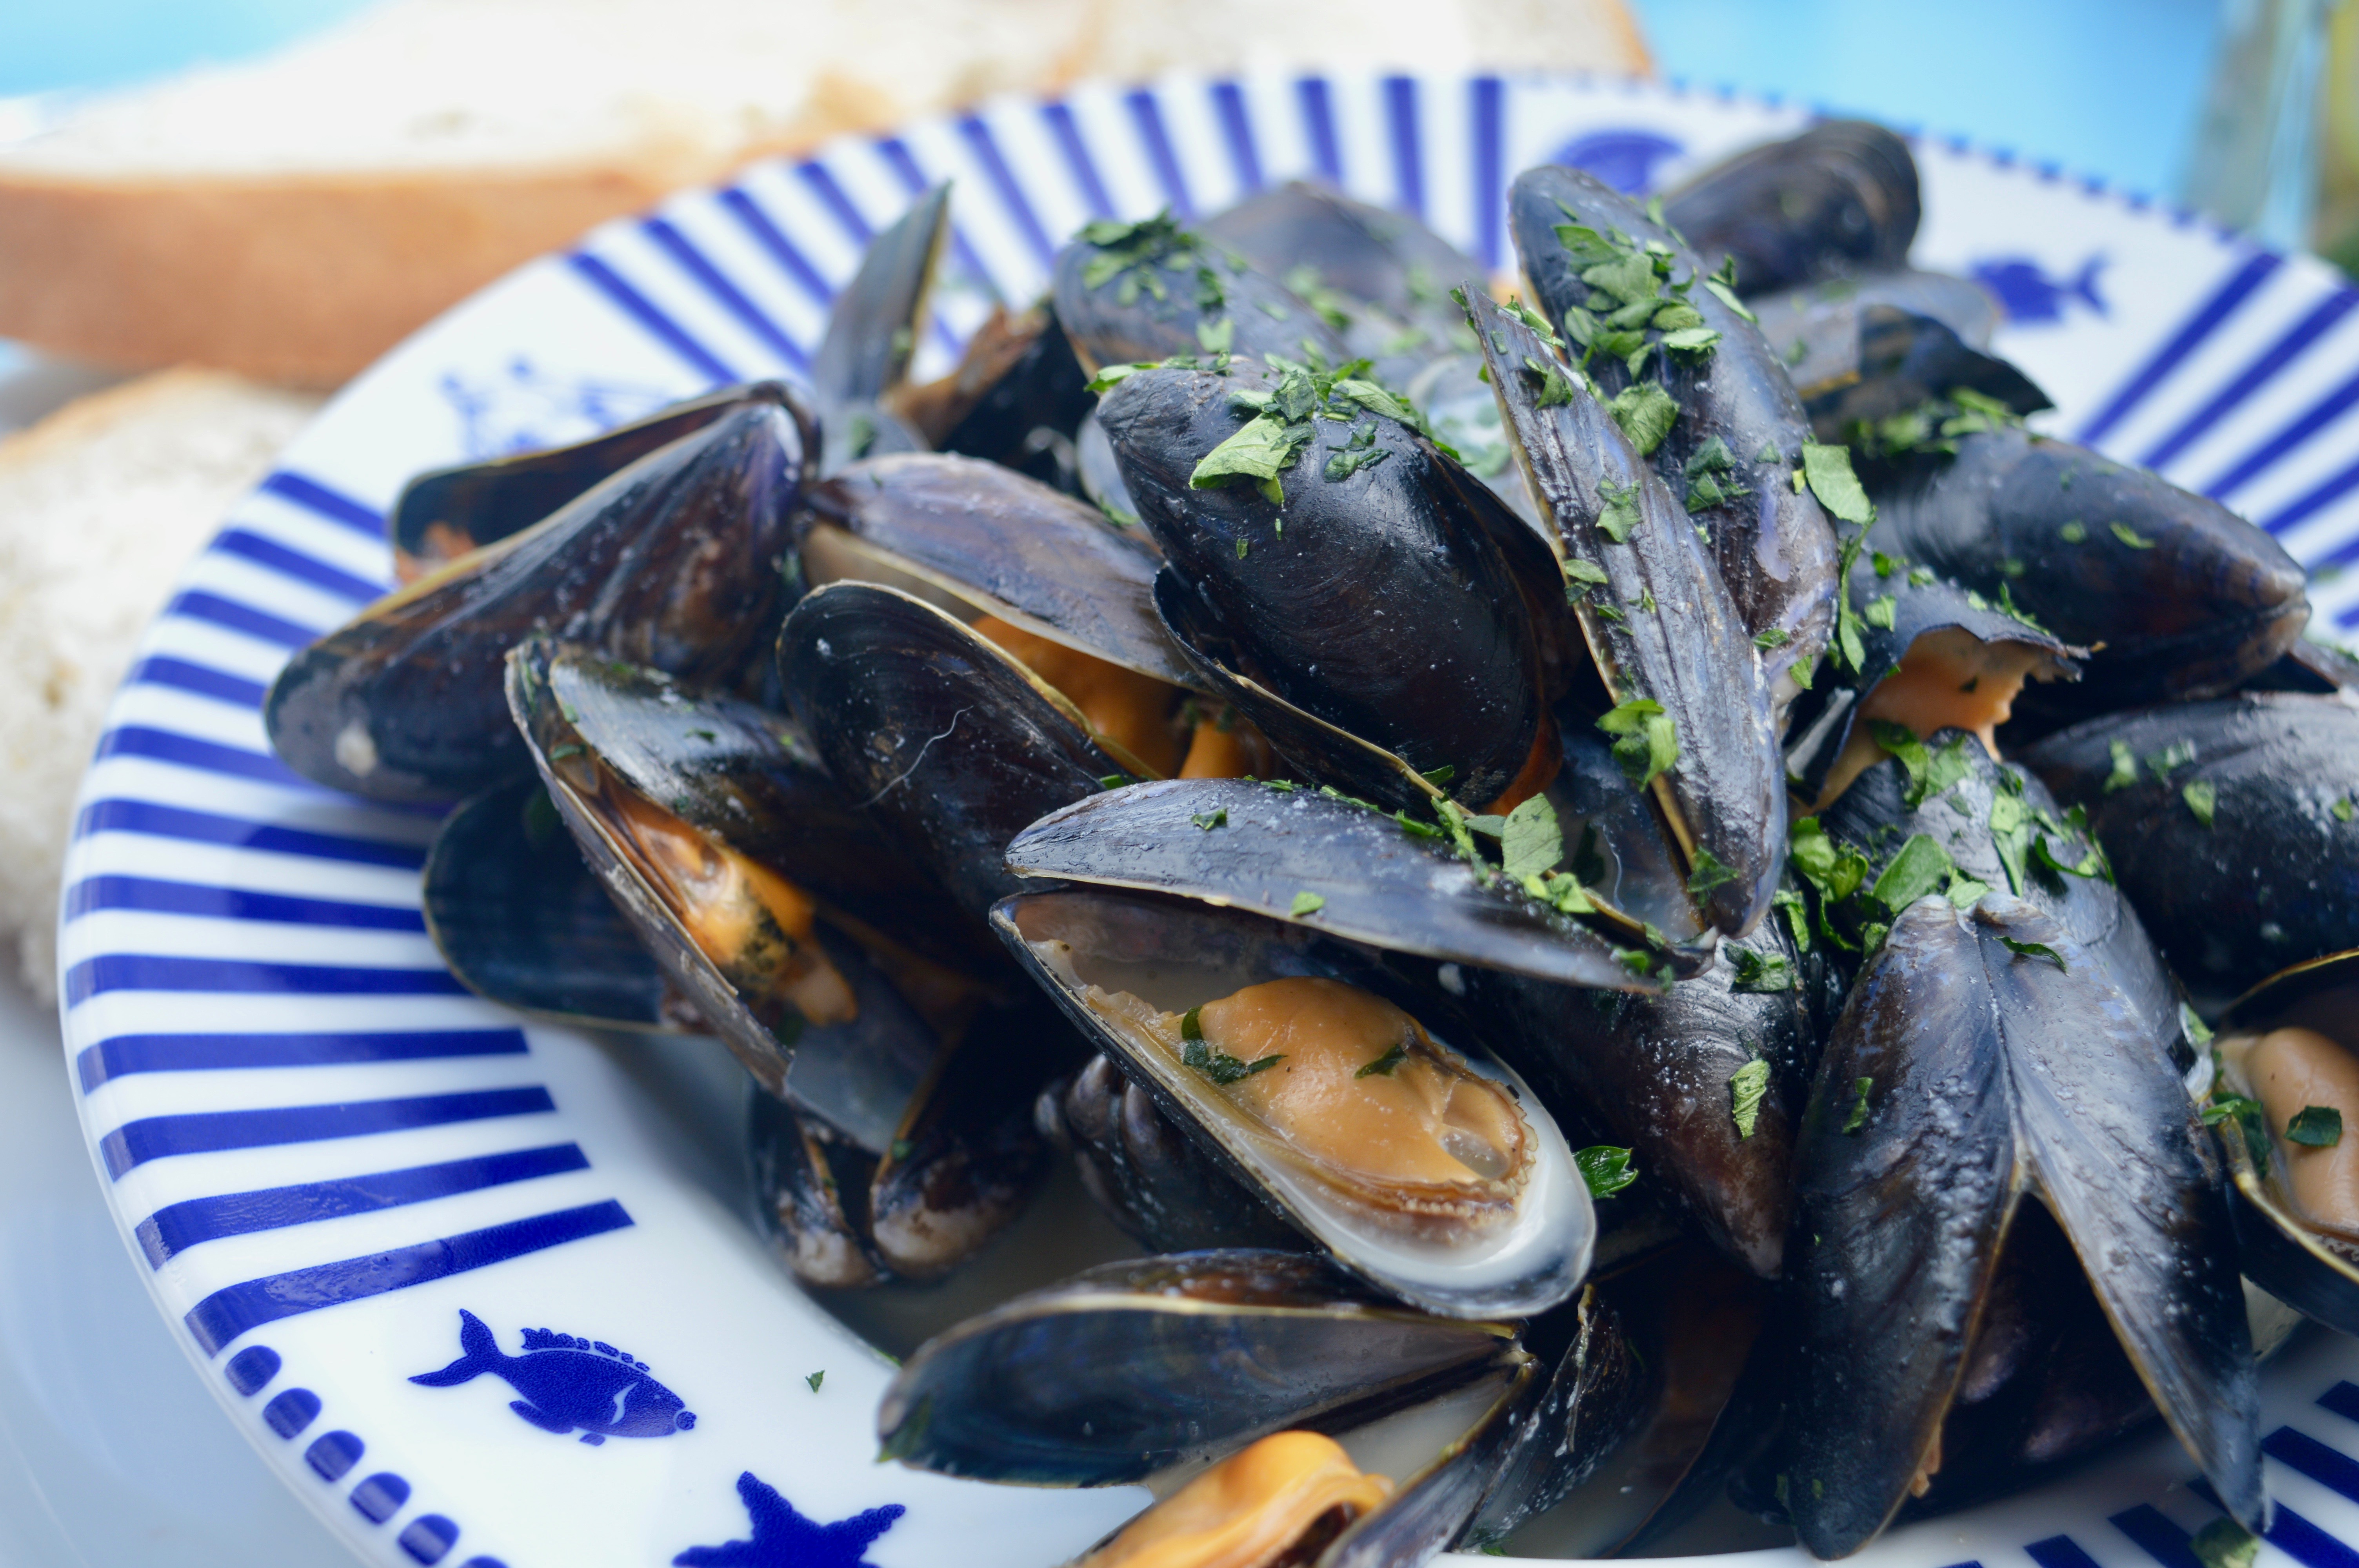 Mussels-Crab-Waltzer-Review-Whitley-Bay-Seaside-Cafe-Elle-Blonde-Luxury-Lifestyle-Destination